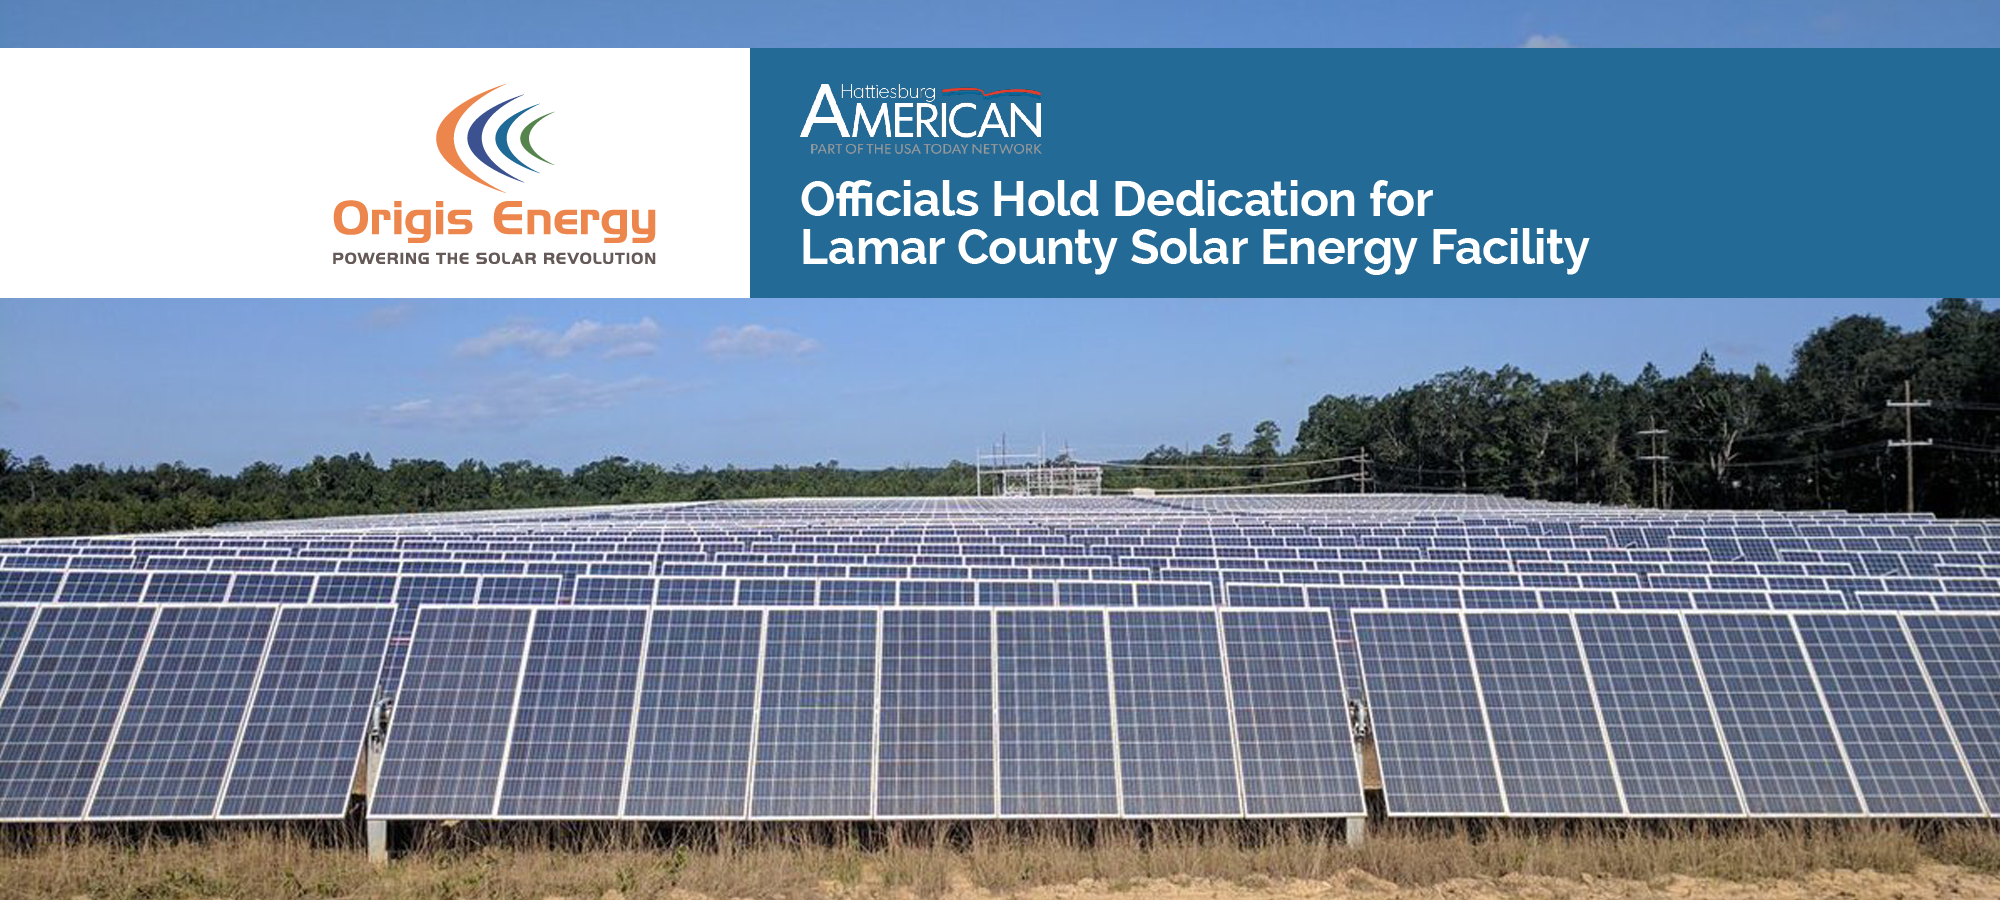 Officials Hold Dedication for Lamar County Solar Energy Facility